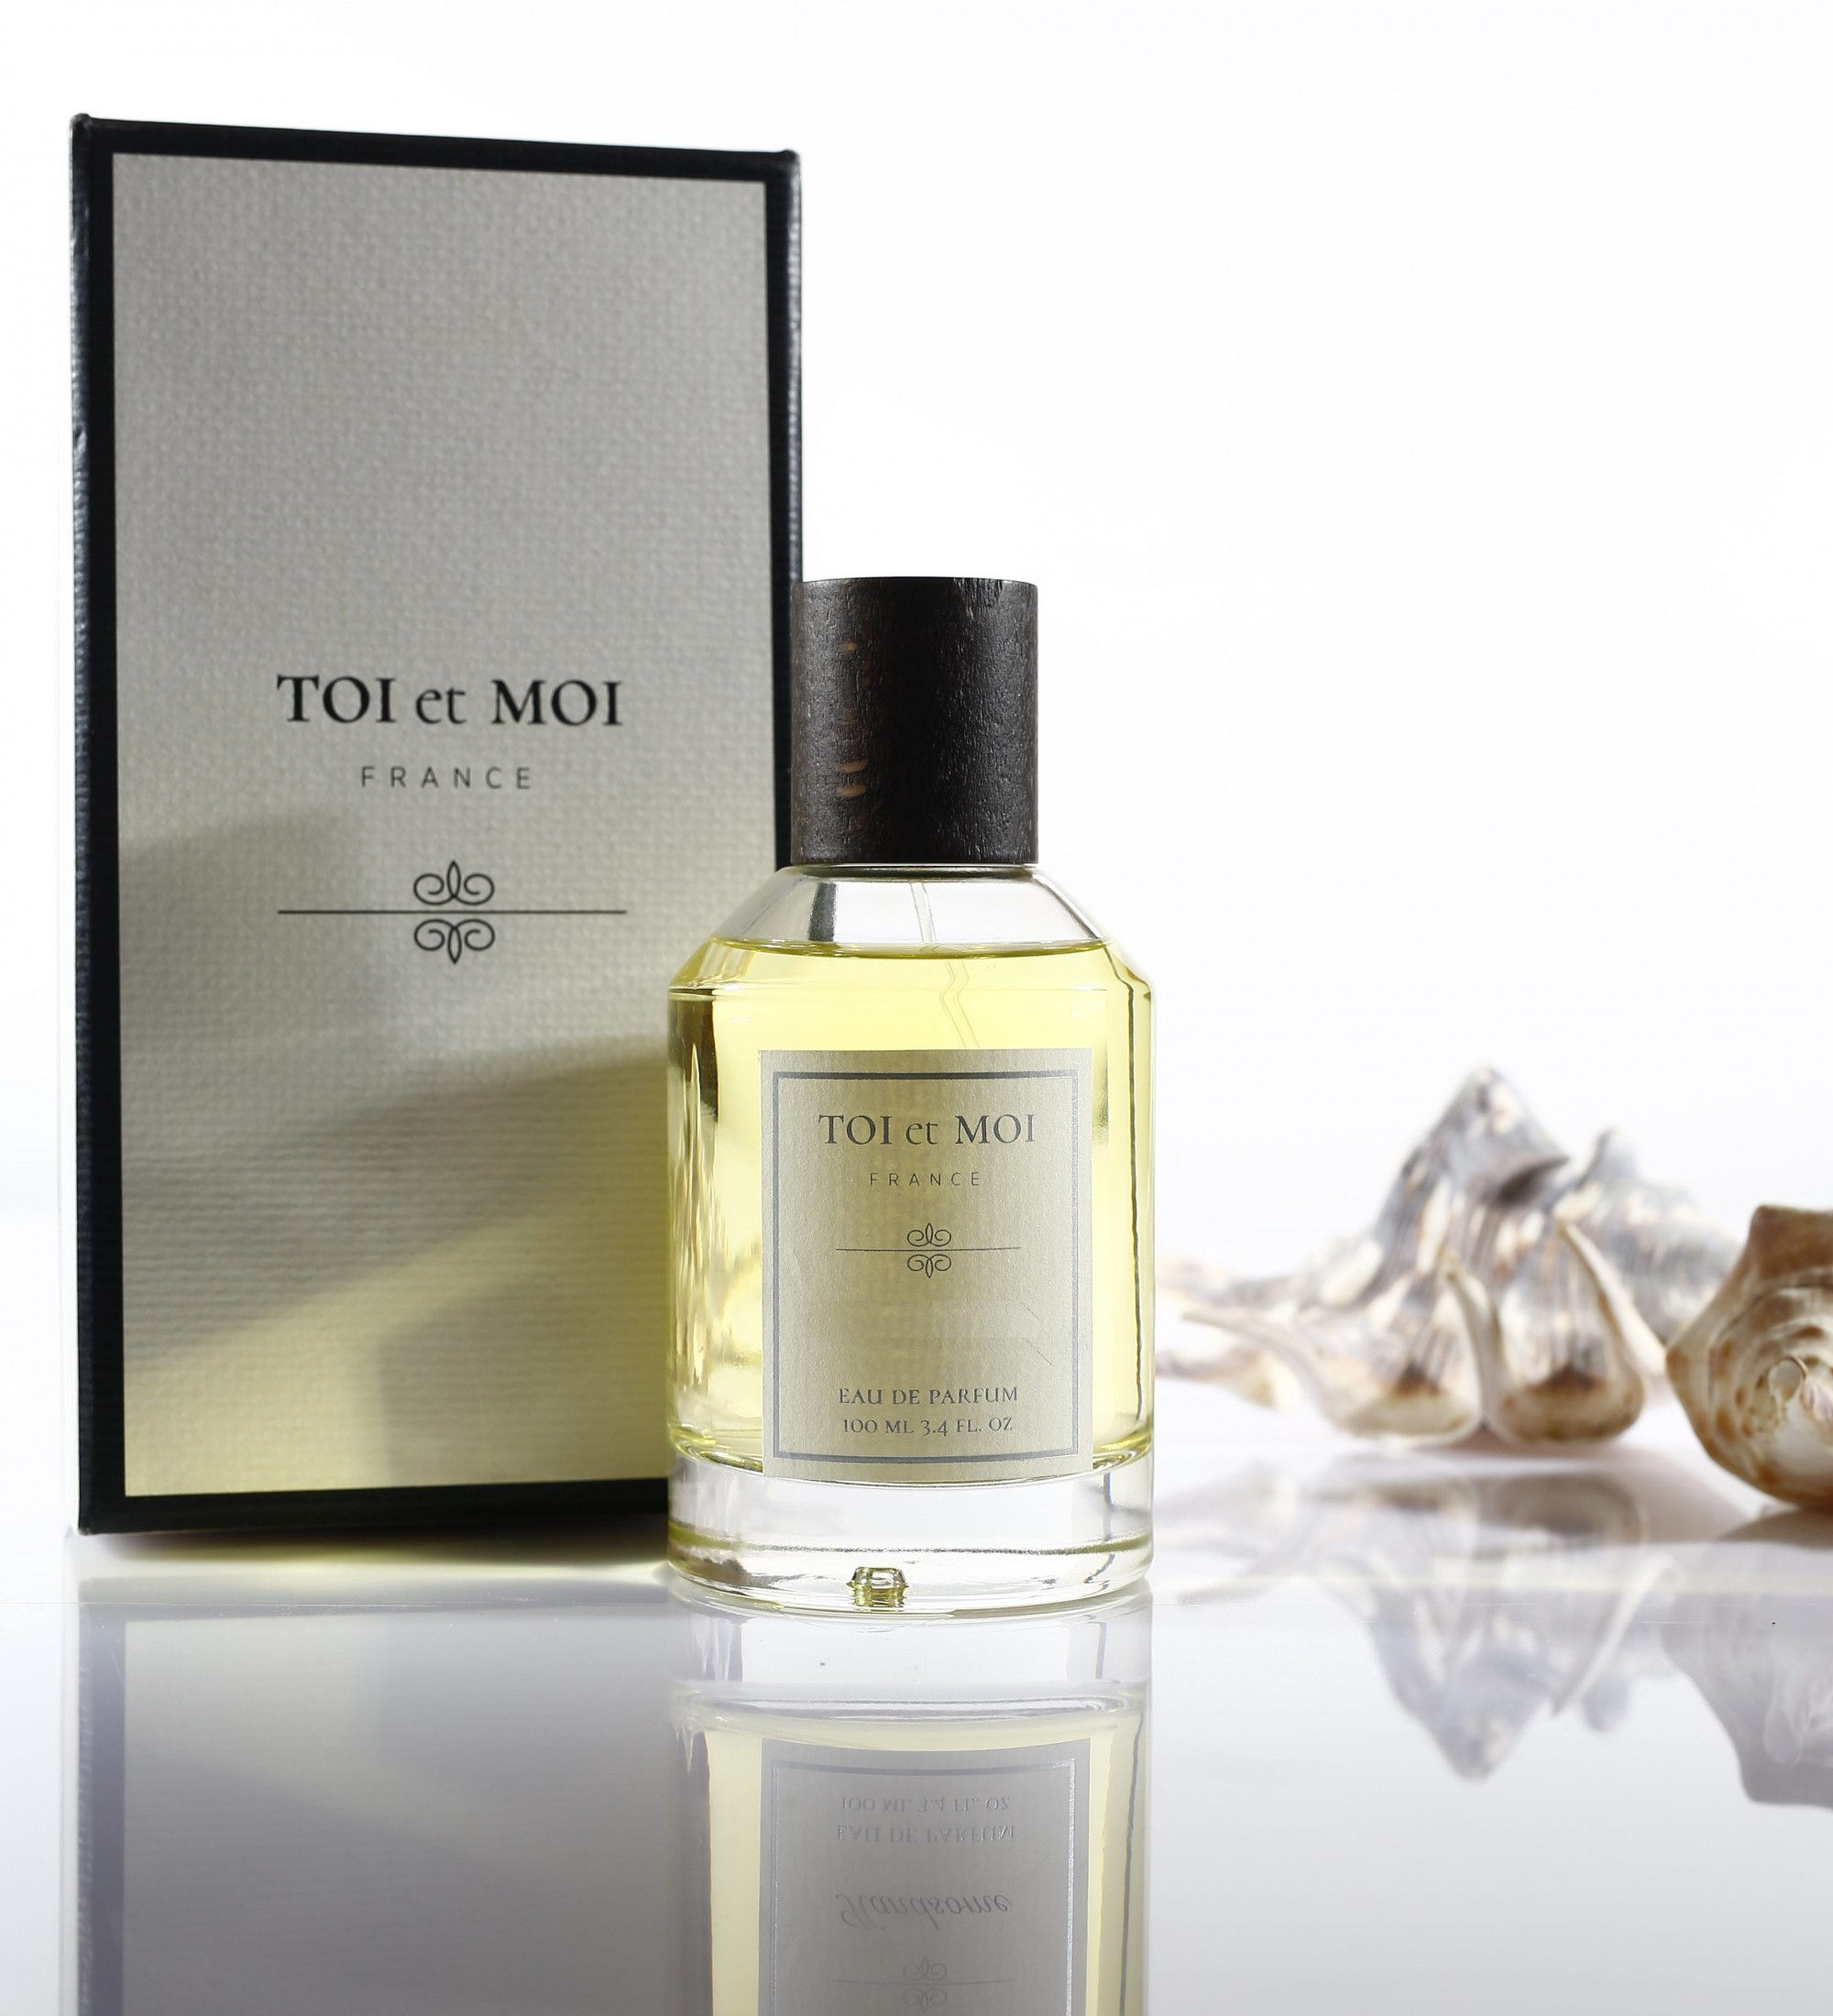 Toietmoi Men Parfum By Toi Ey Moi Eau De Parfum 100 ML. 3.4 Oz. Free Shipping